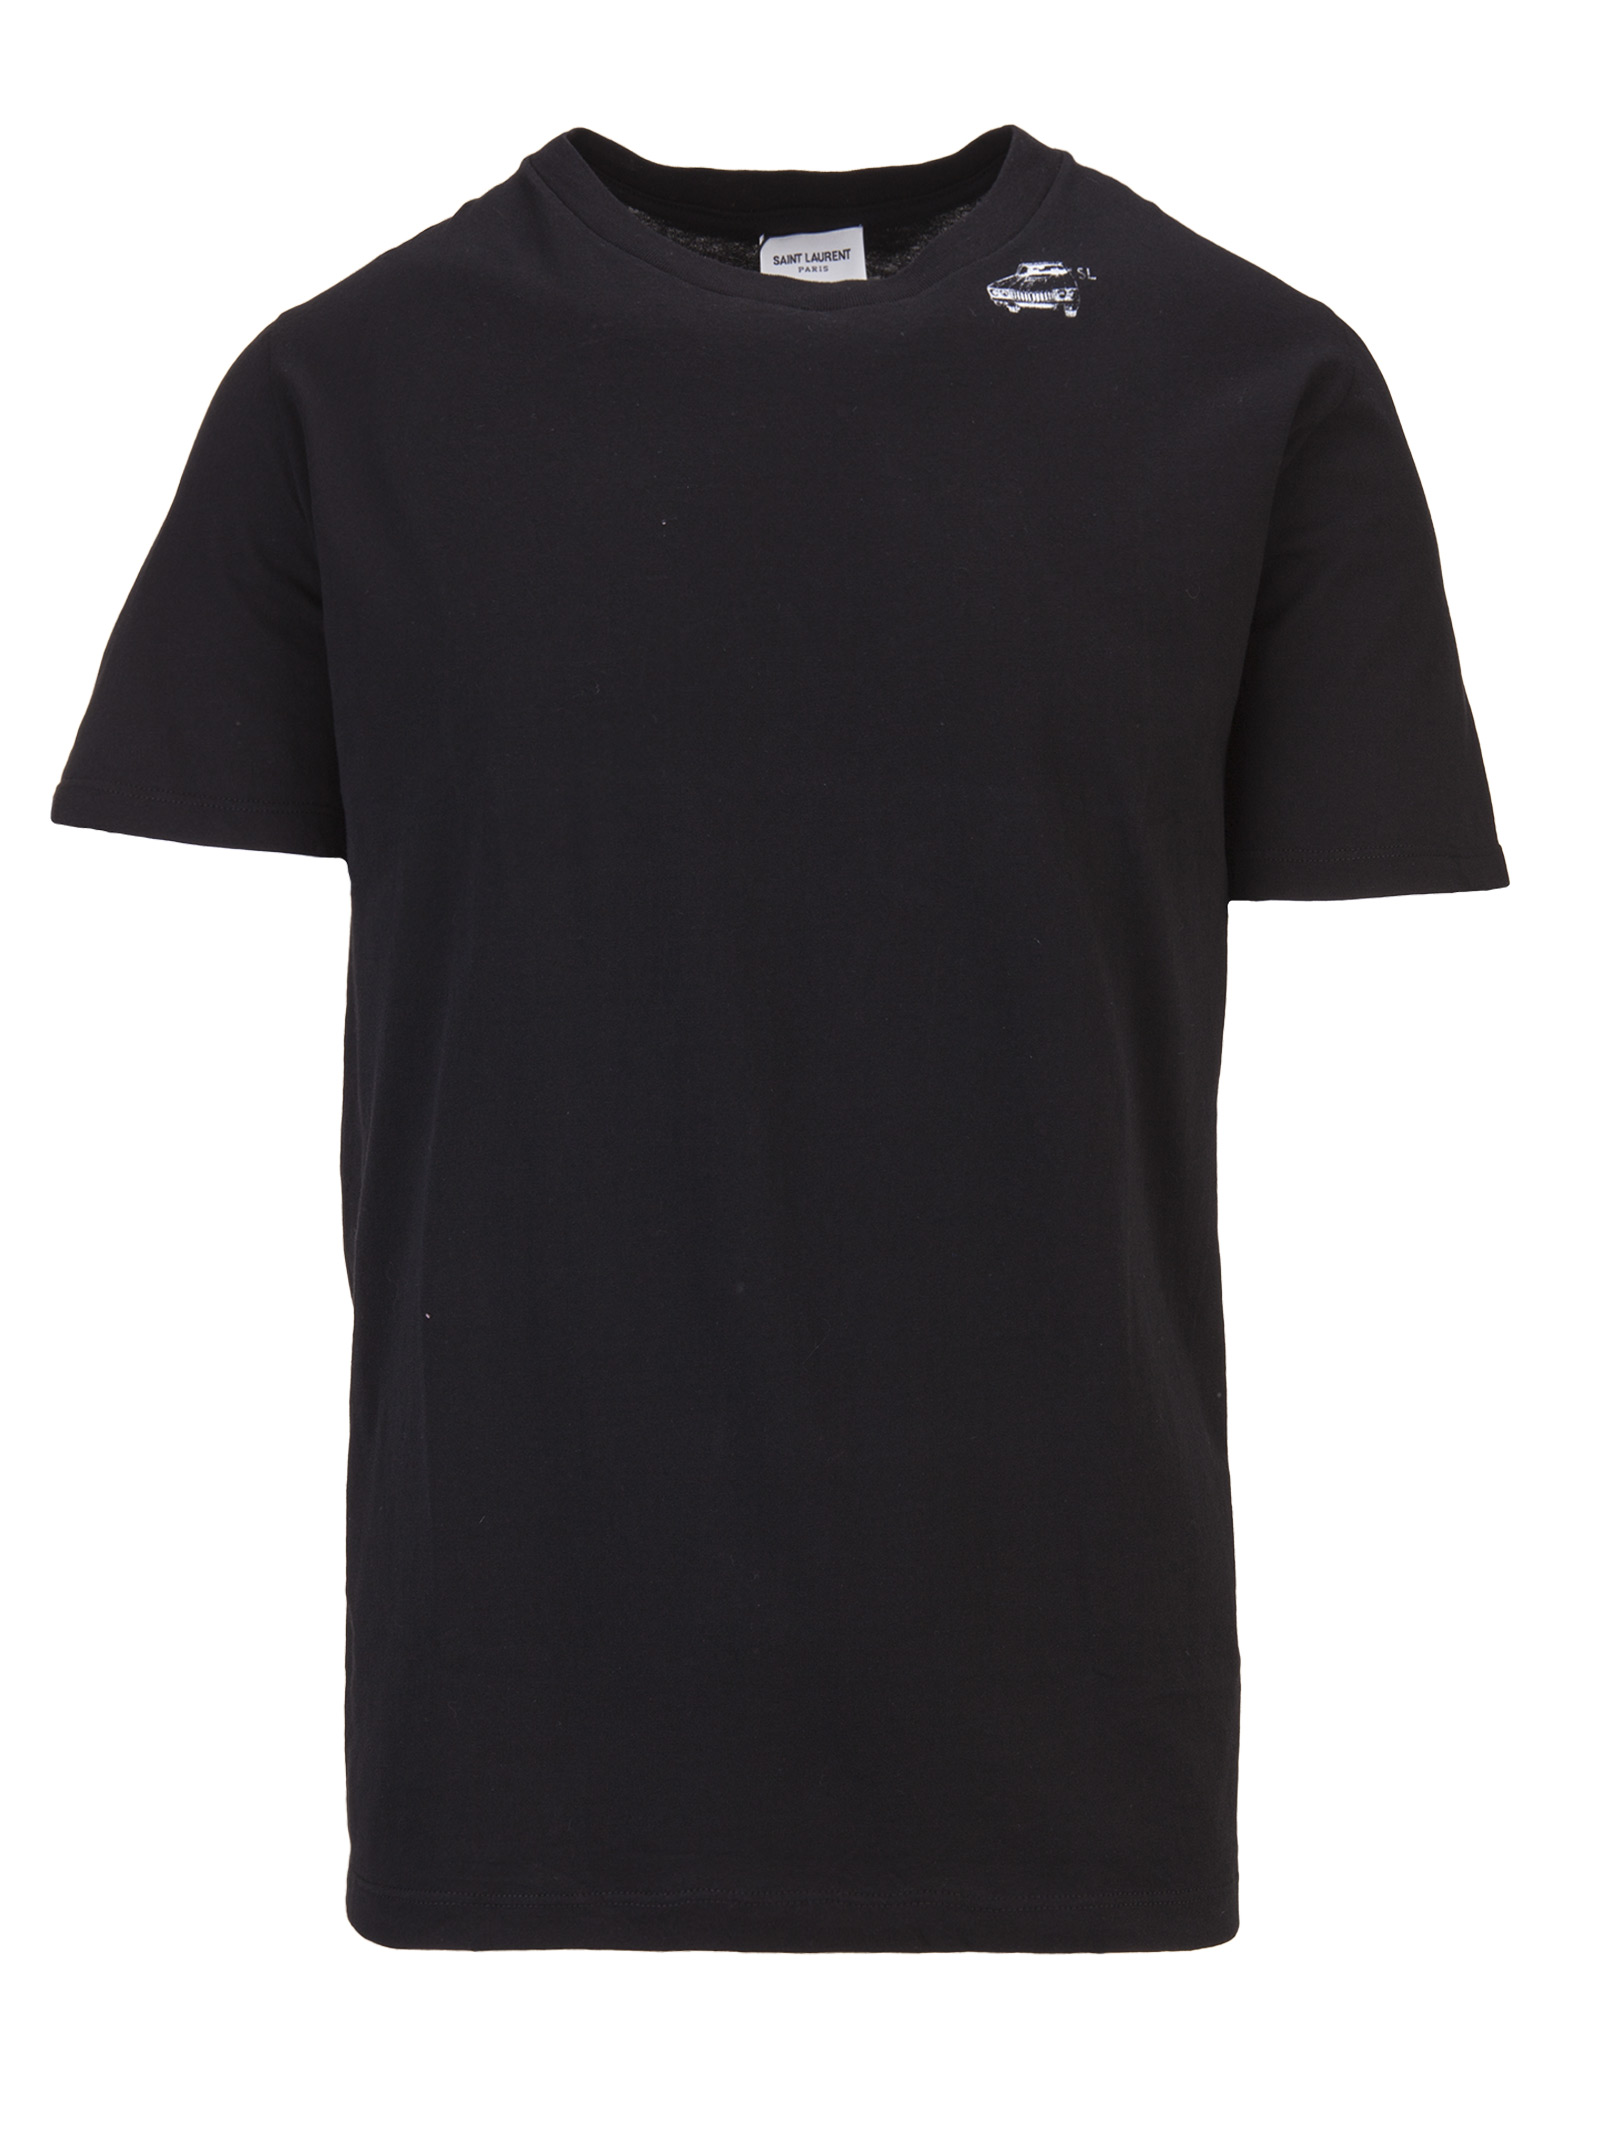 T-shirt Saint Laurent